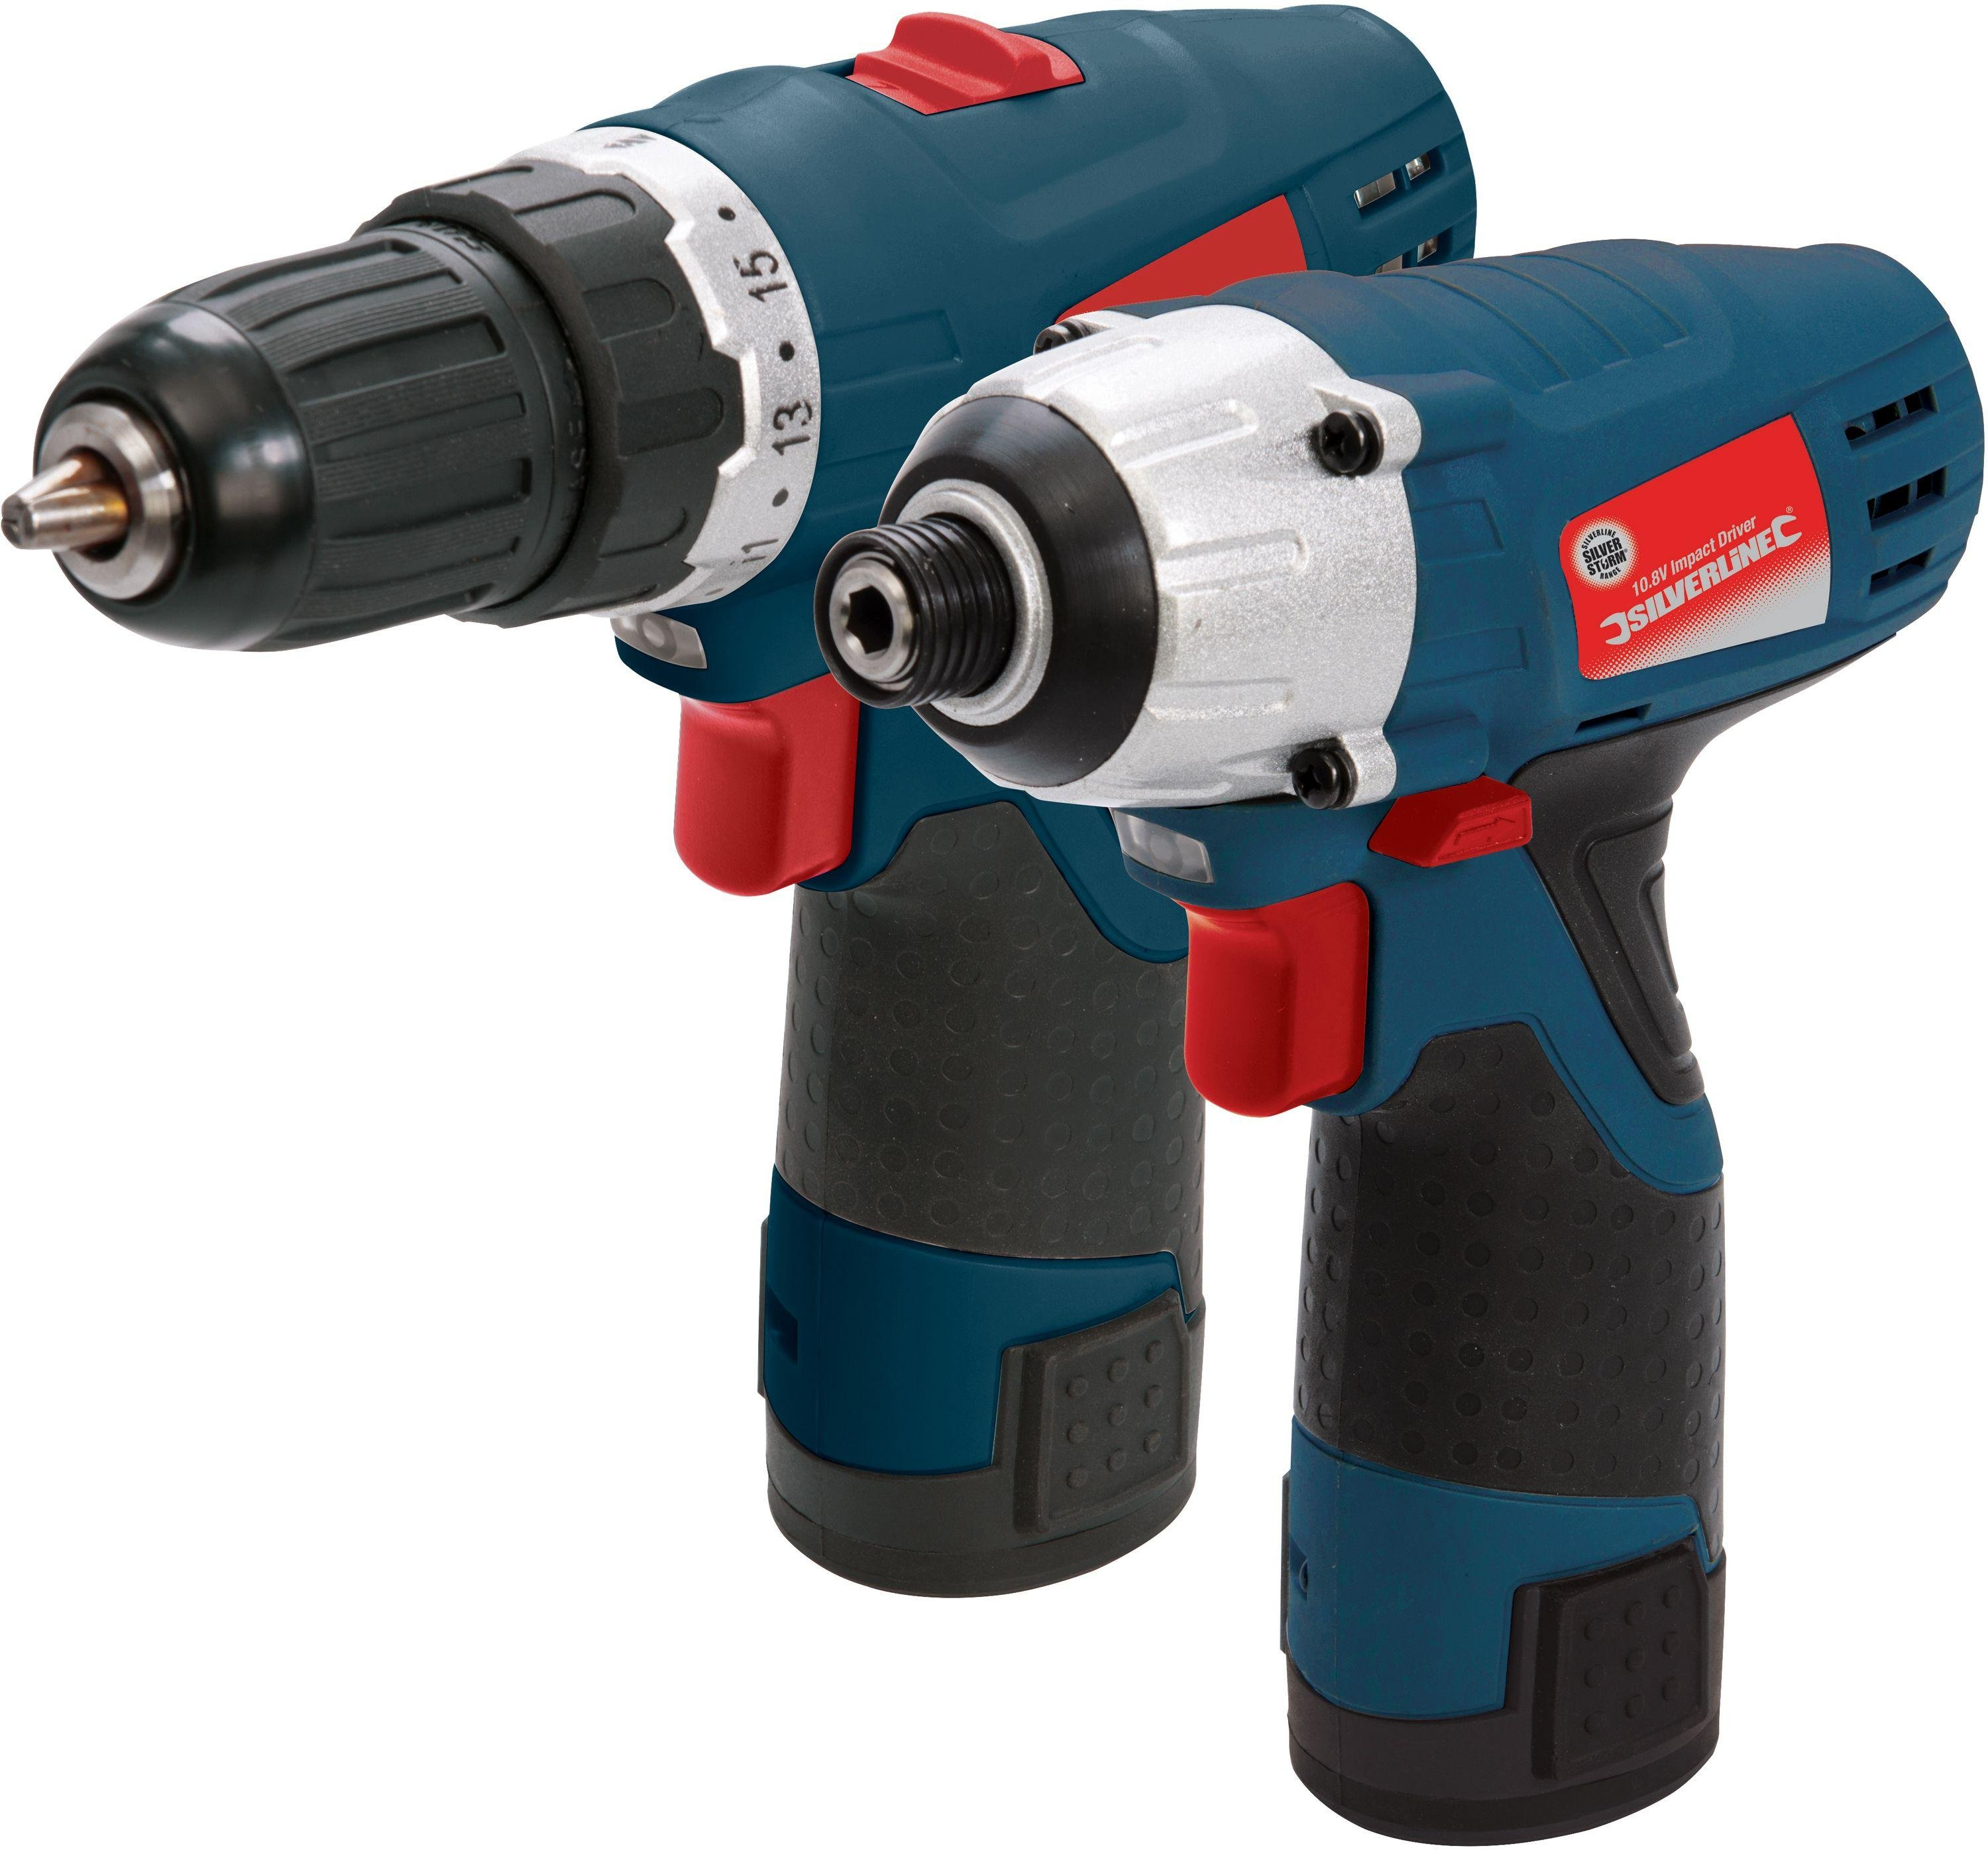 Silverstorm - 108V Drill Driver and Impact Driver Twin Pack lowest price